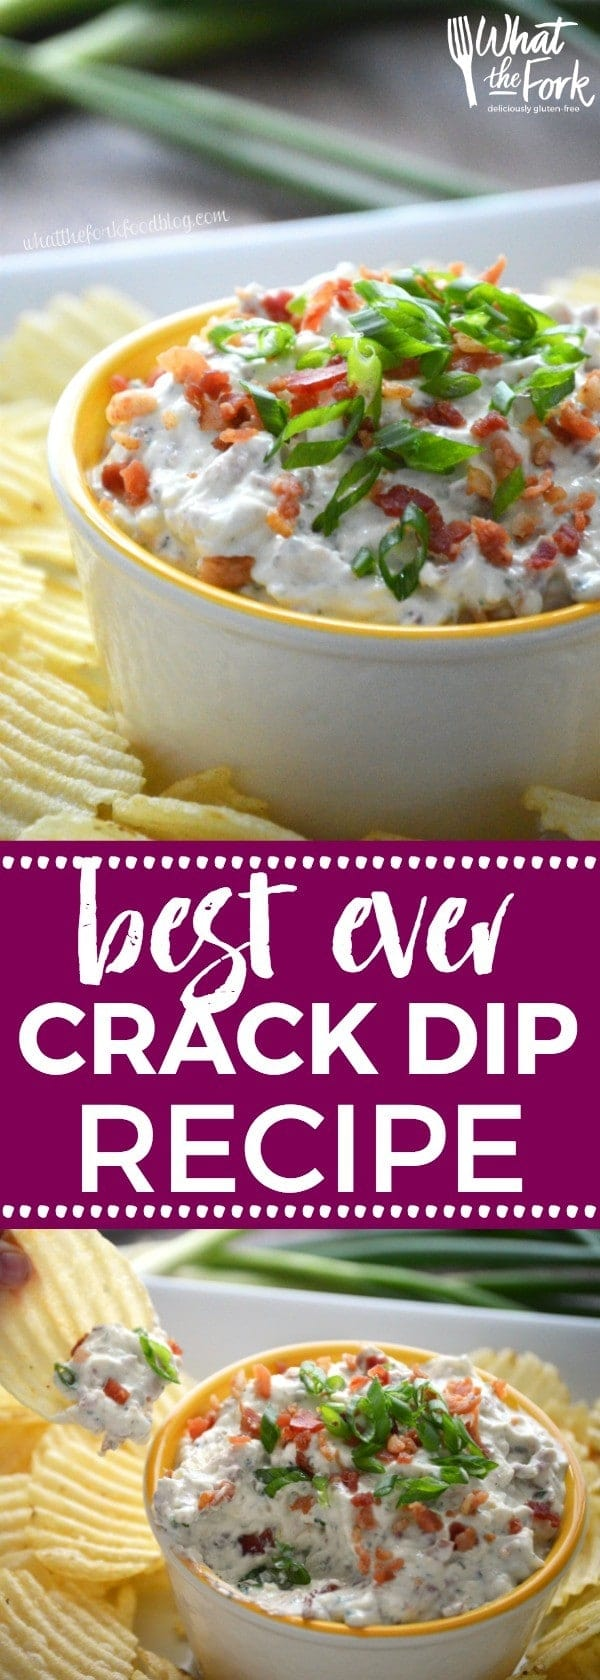 Super Easy Crack Dip - a sour cream based dip with ranch dip mix, cheese and bacon. Totally addicting! Crack Dip Pinterest recipe from @whattheforkblog | whattheforkfoodblog.com | crack dip cold | crack dip recipes | crack dip recipe | cheesy crack dip | crack dip with bacon | how to make crack dip | what is crack dip | award winning crack dip | game day recipes | gluten free appetizer recipes | gluten free dip recipes | easy dip recipes |